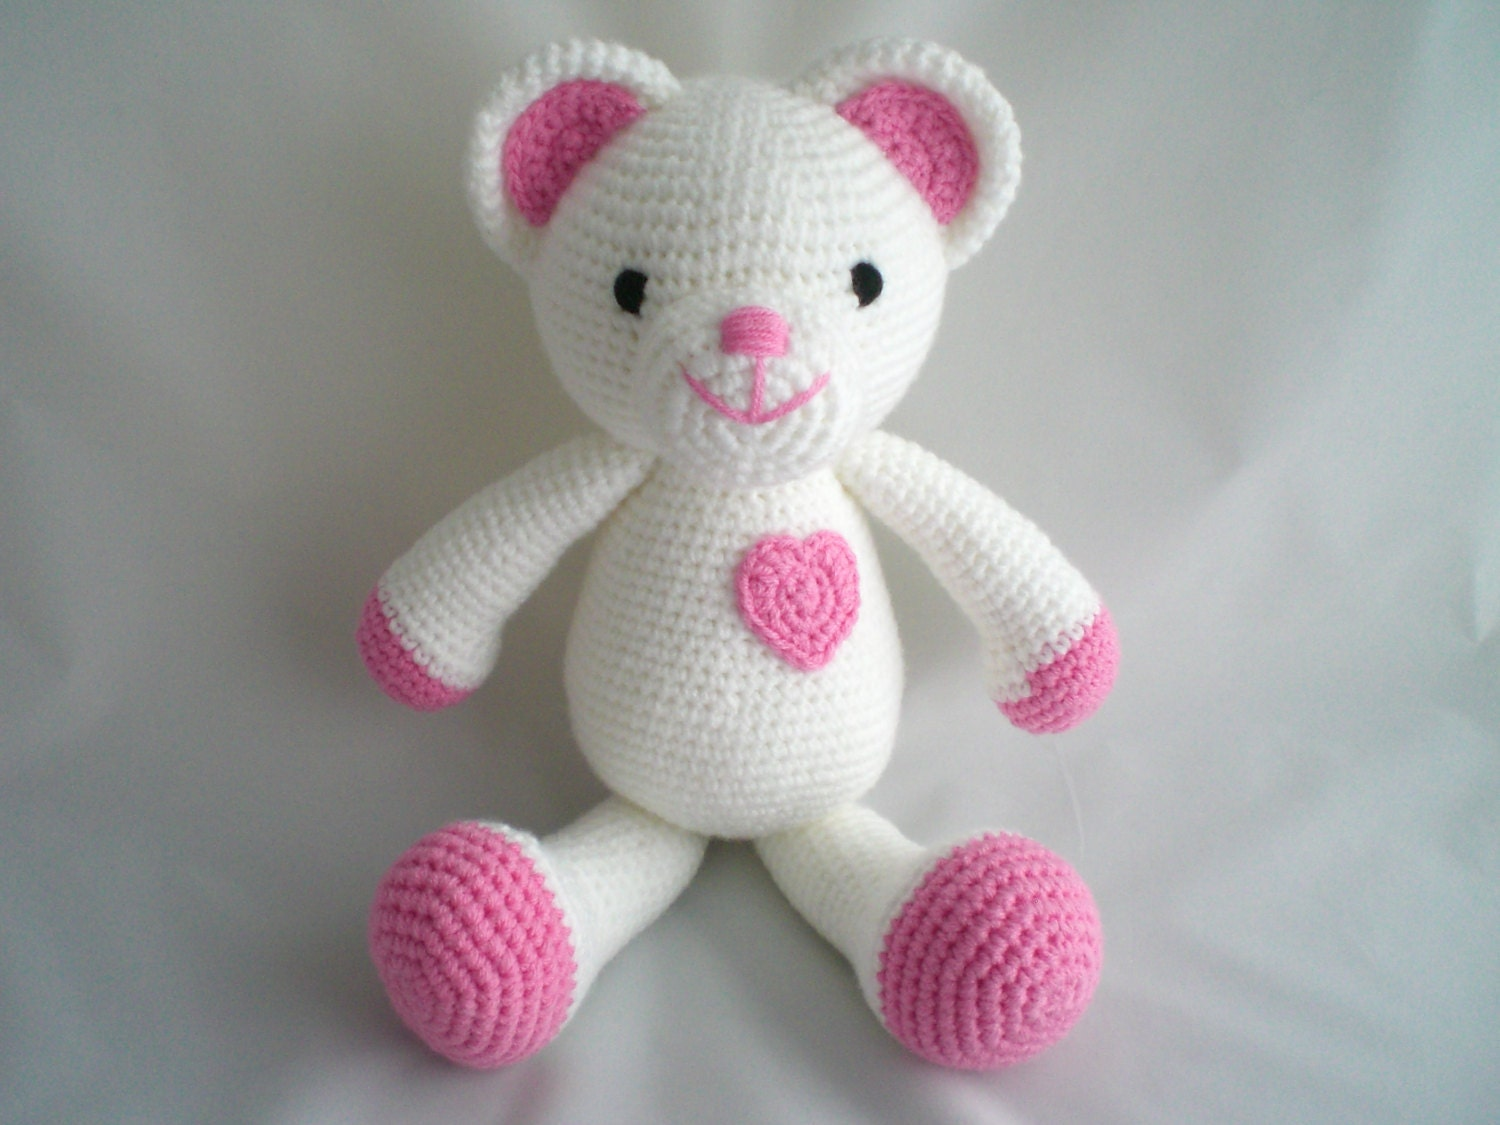 Amigurumi Little Teddy Bear : Crochet Teddy Bear / Amigurumi Teddy Bear / Crochet Love You